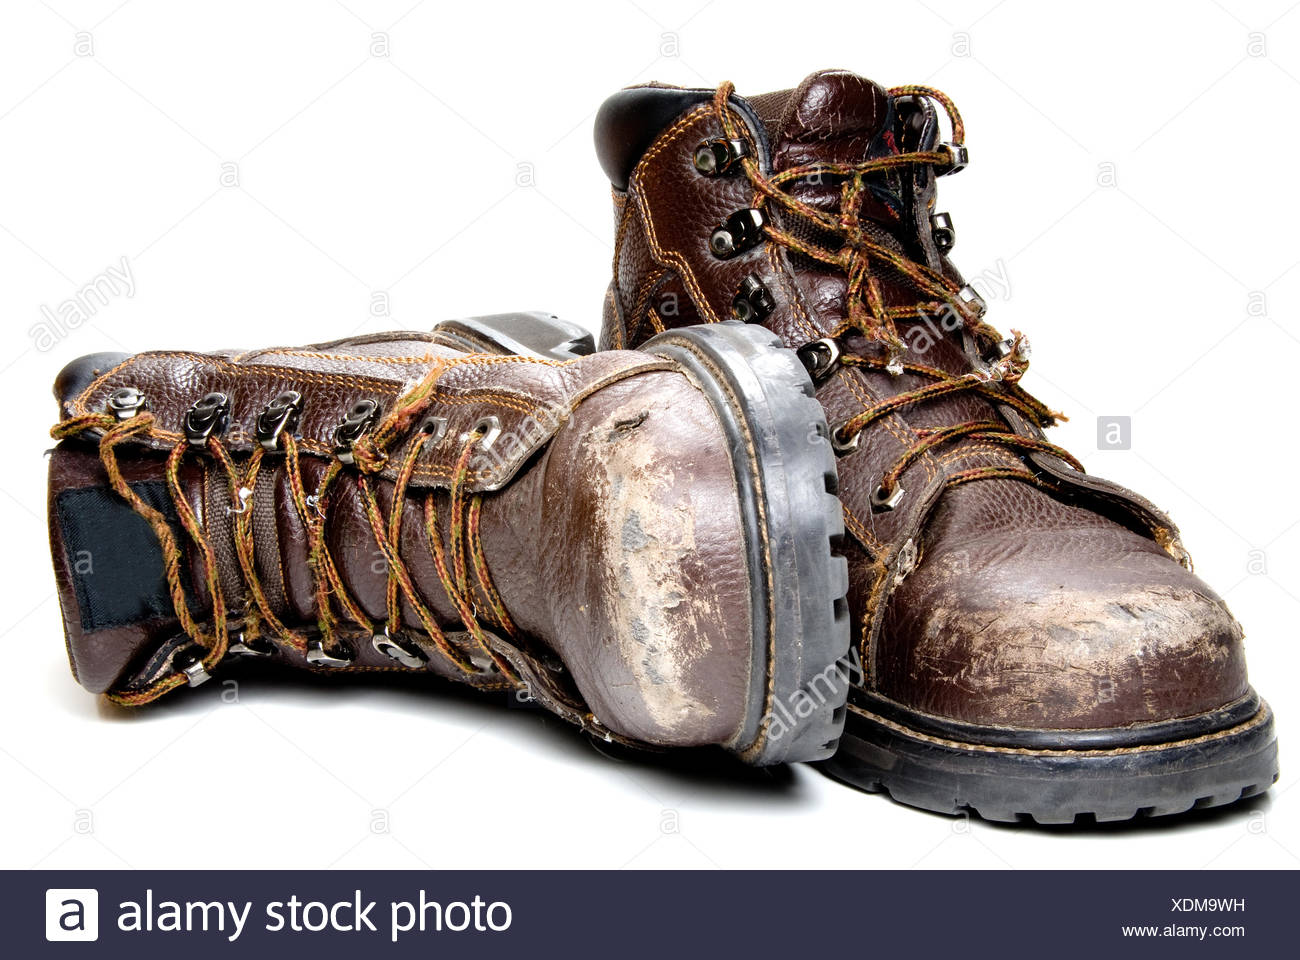 8648e9bfccd Steel Toed Boots Stock Photos & Steel Toed Boots Stock Images - Alamy